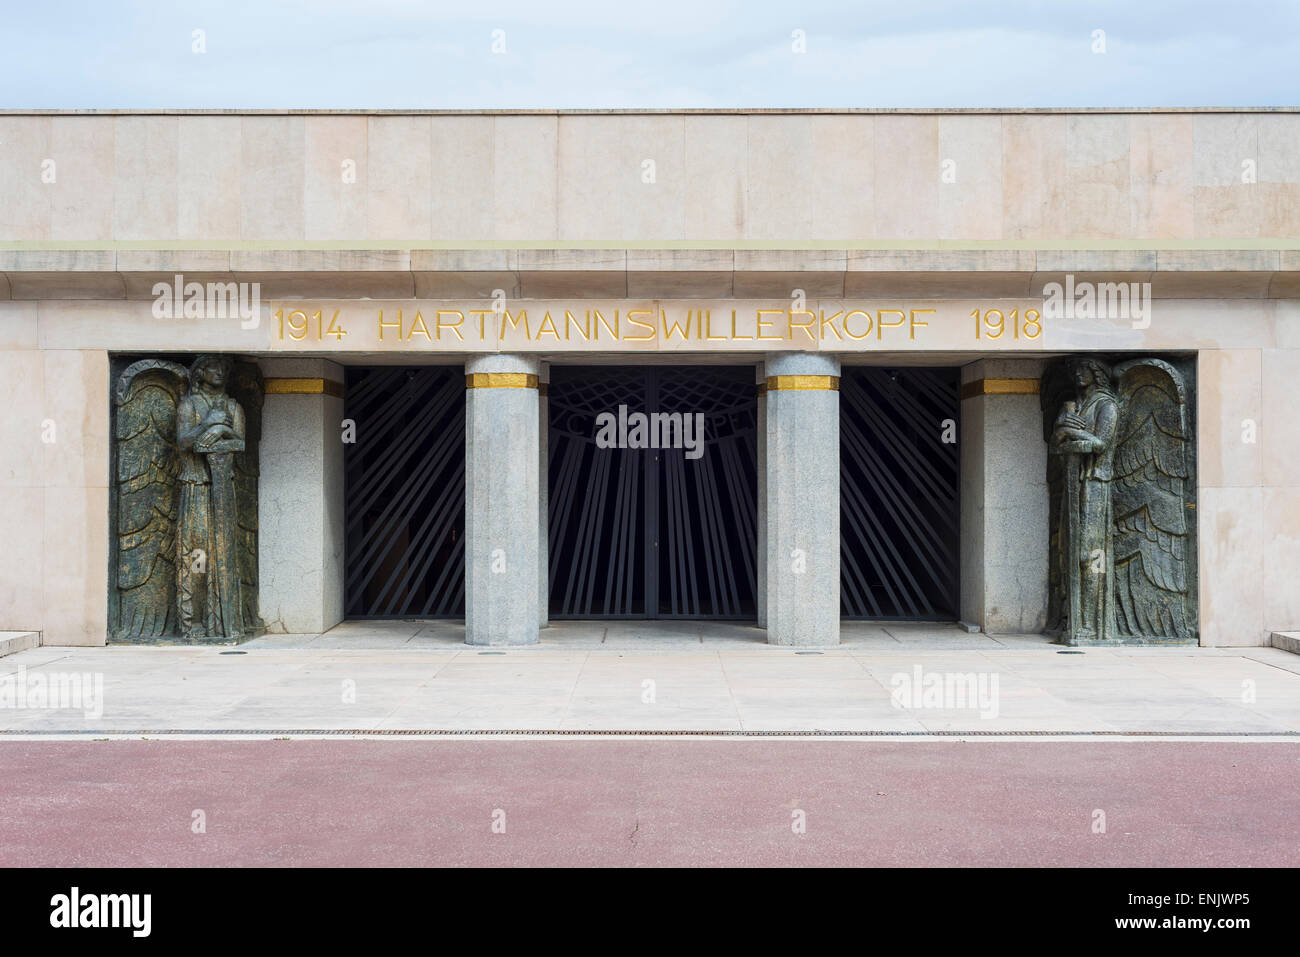 Altar of the Fatherland, Hartmannswillerkopf, national monument of World War I, built in 1924-1929, Wattwiller, - Stock Image